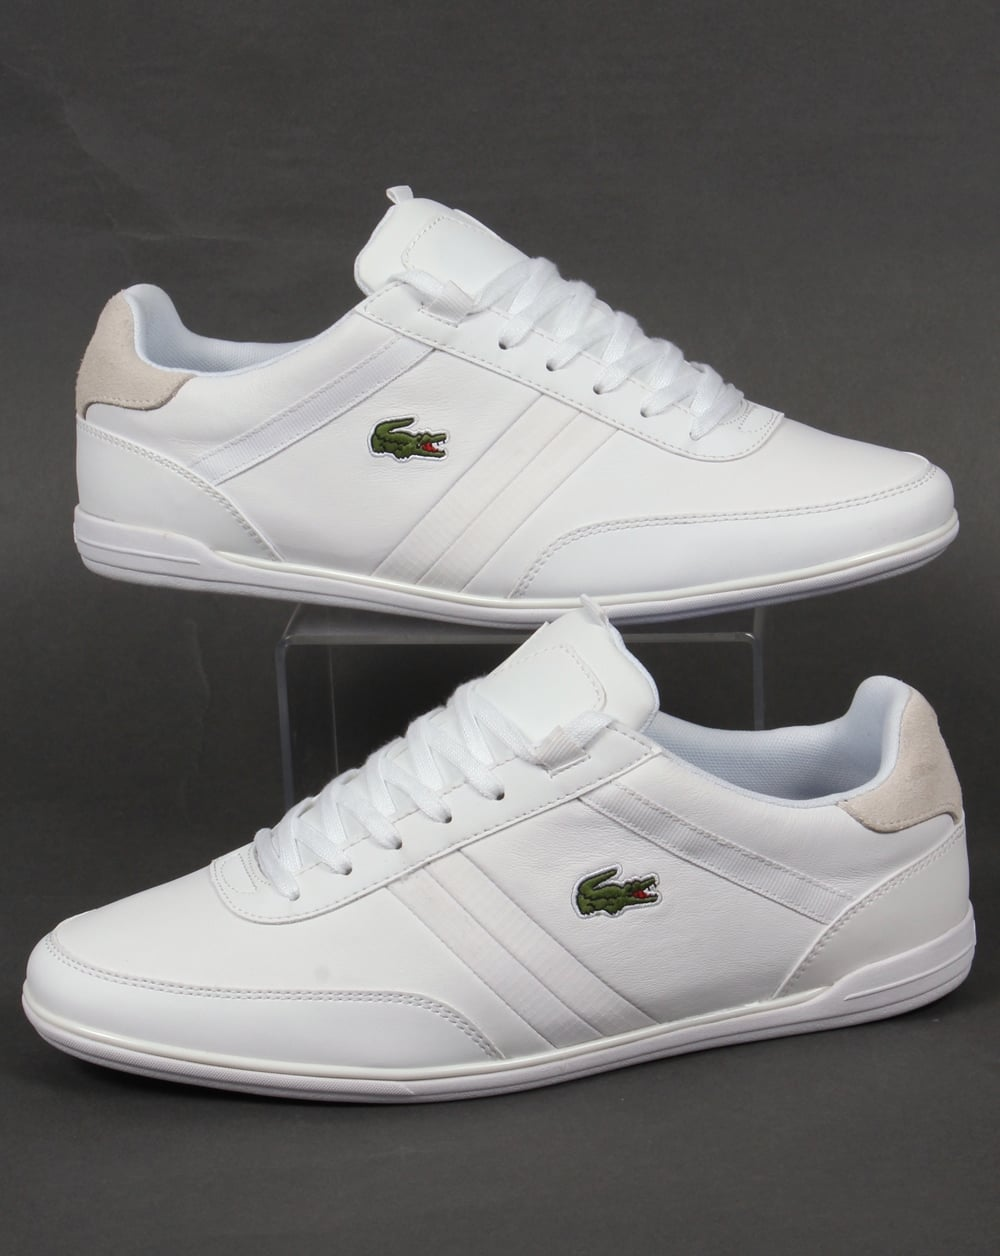 lacoste giron trainers whiteshoesmens